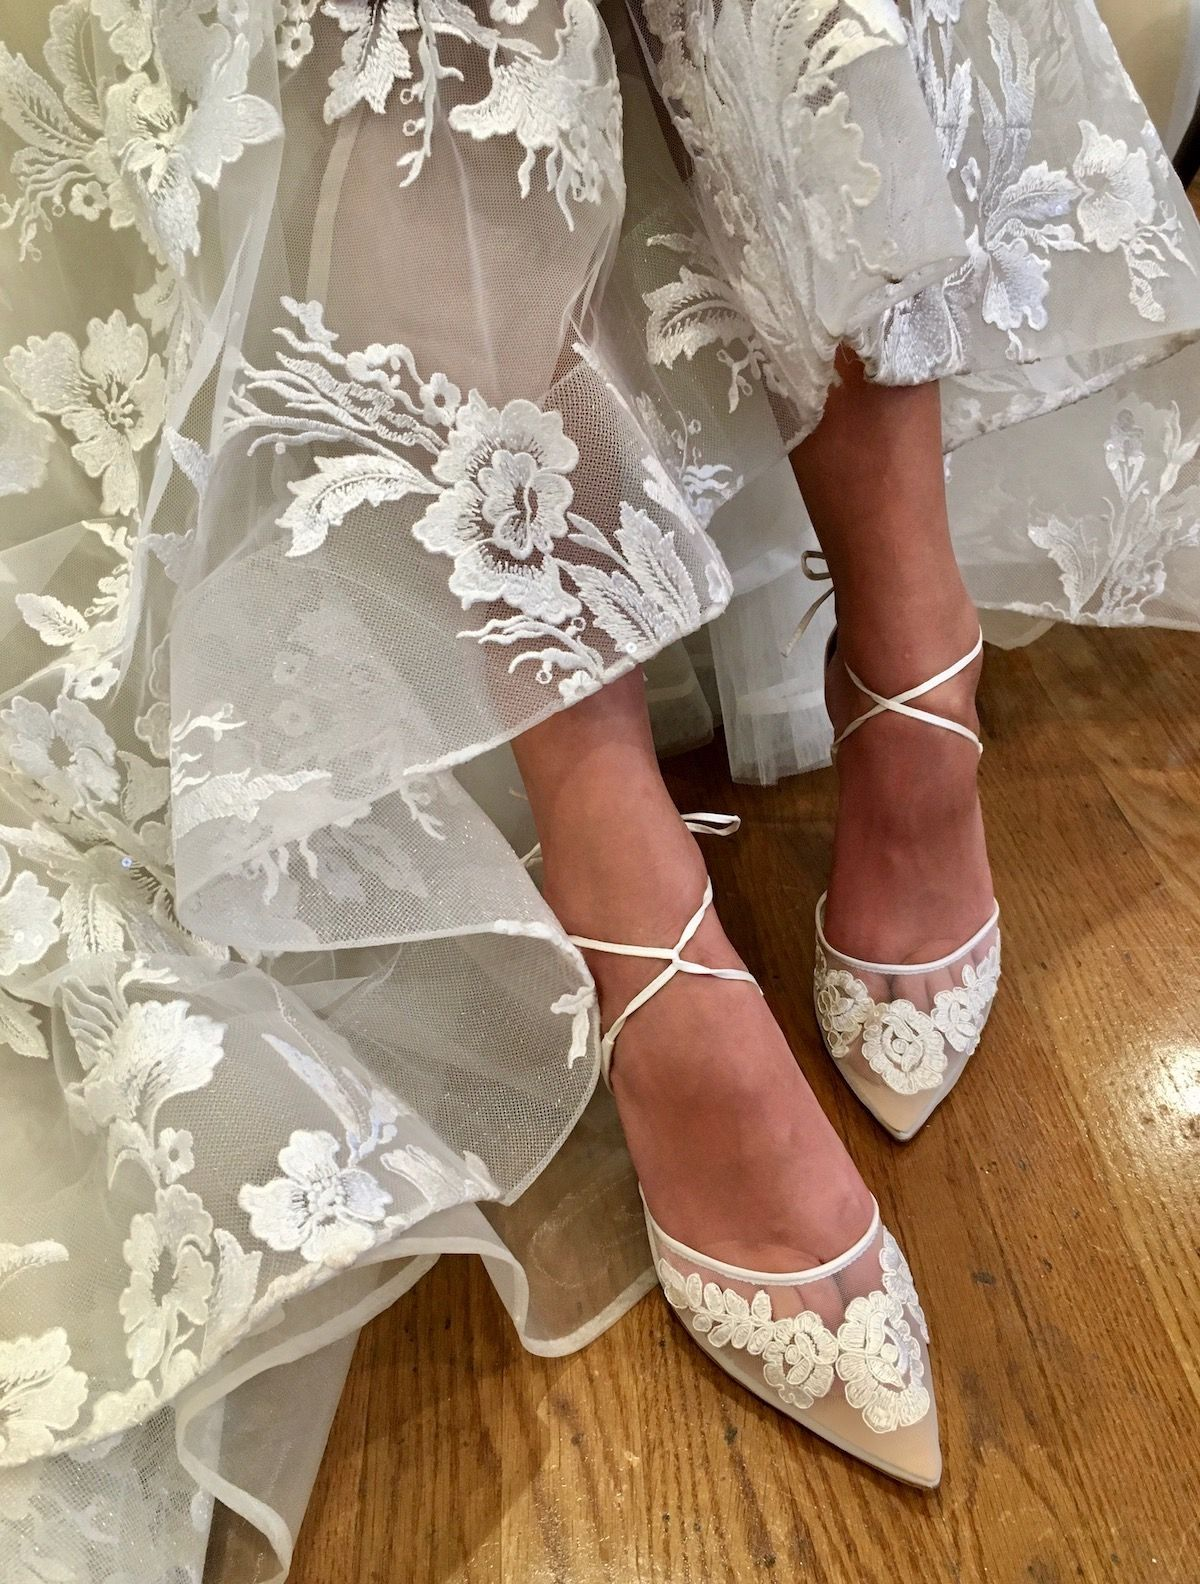 Lace Wedding Shoes, Kitten Heels#heels #kitten #lace #shoes #wedding